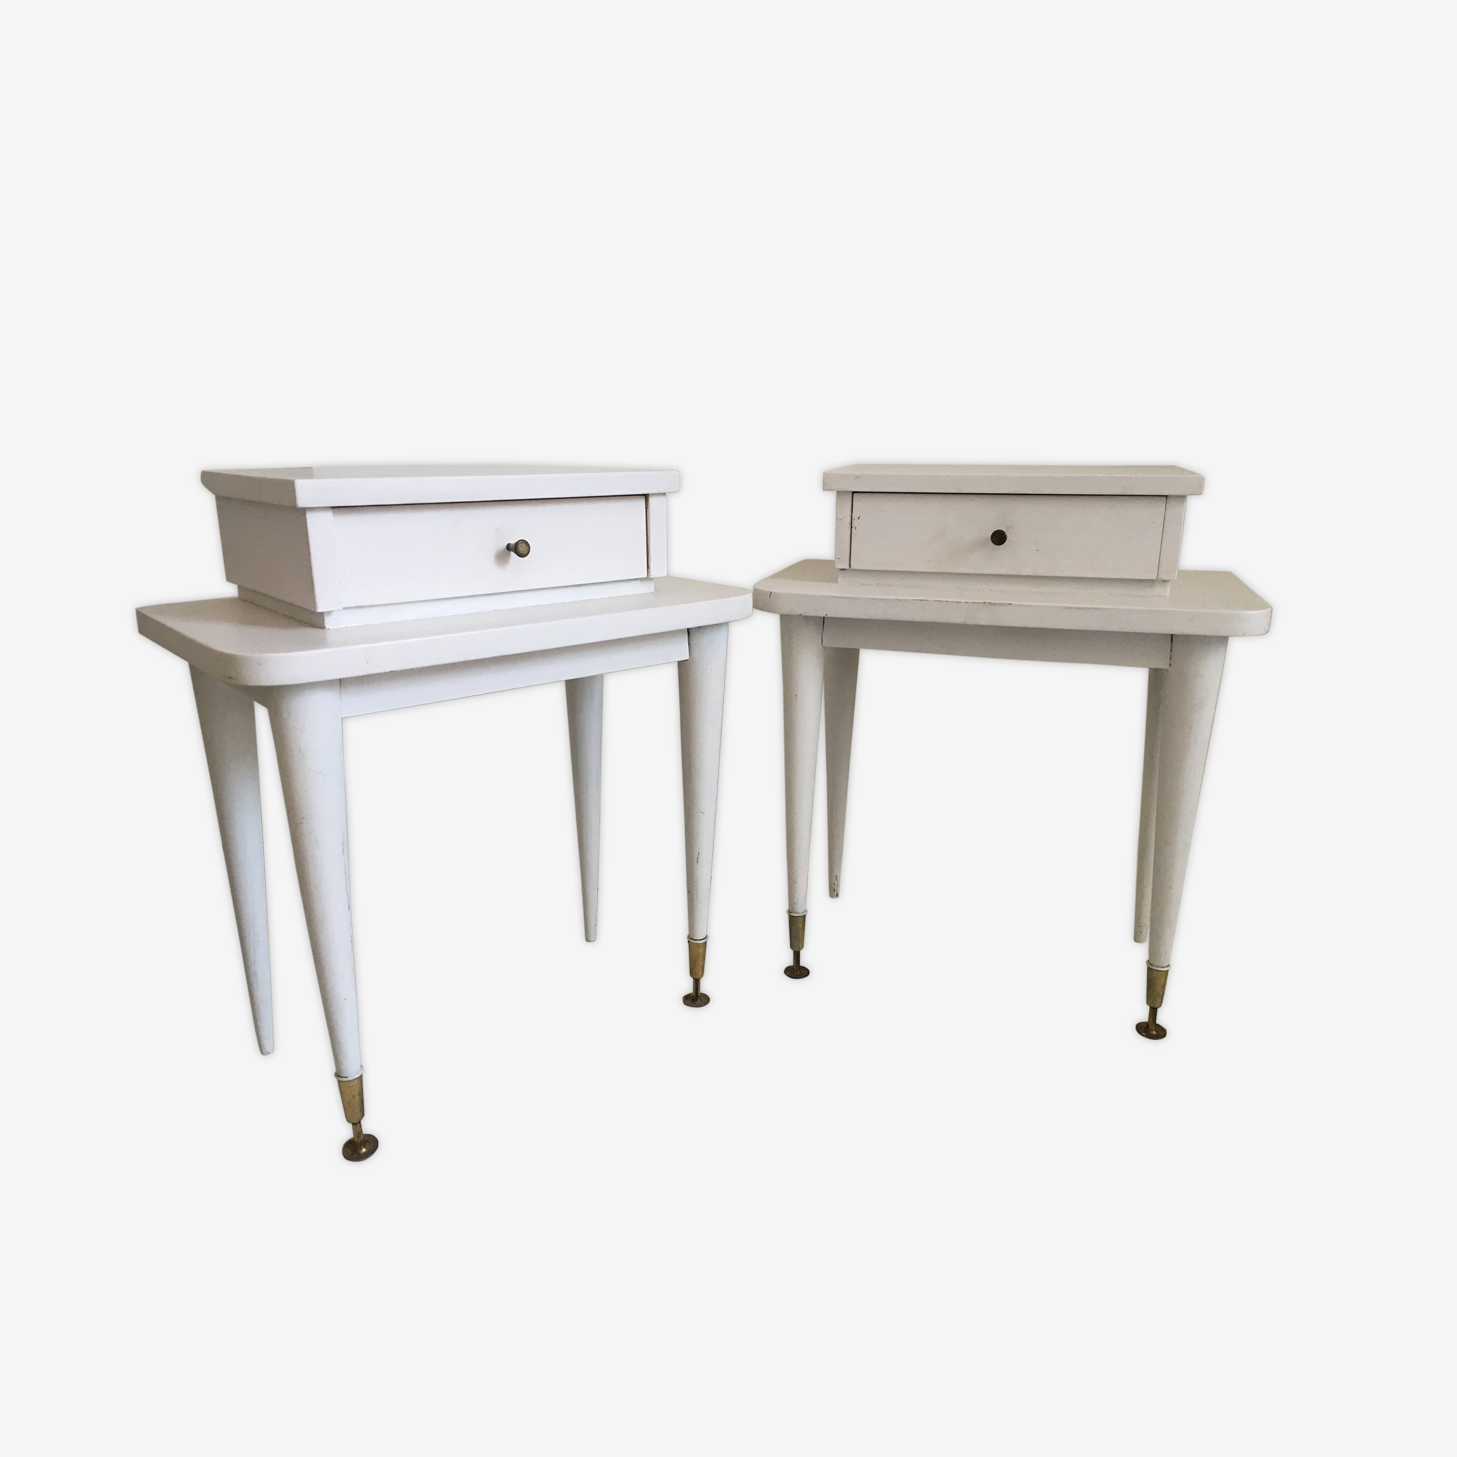 Paire of bedside tables